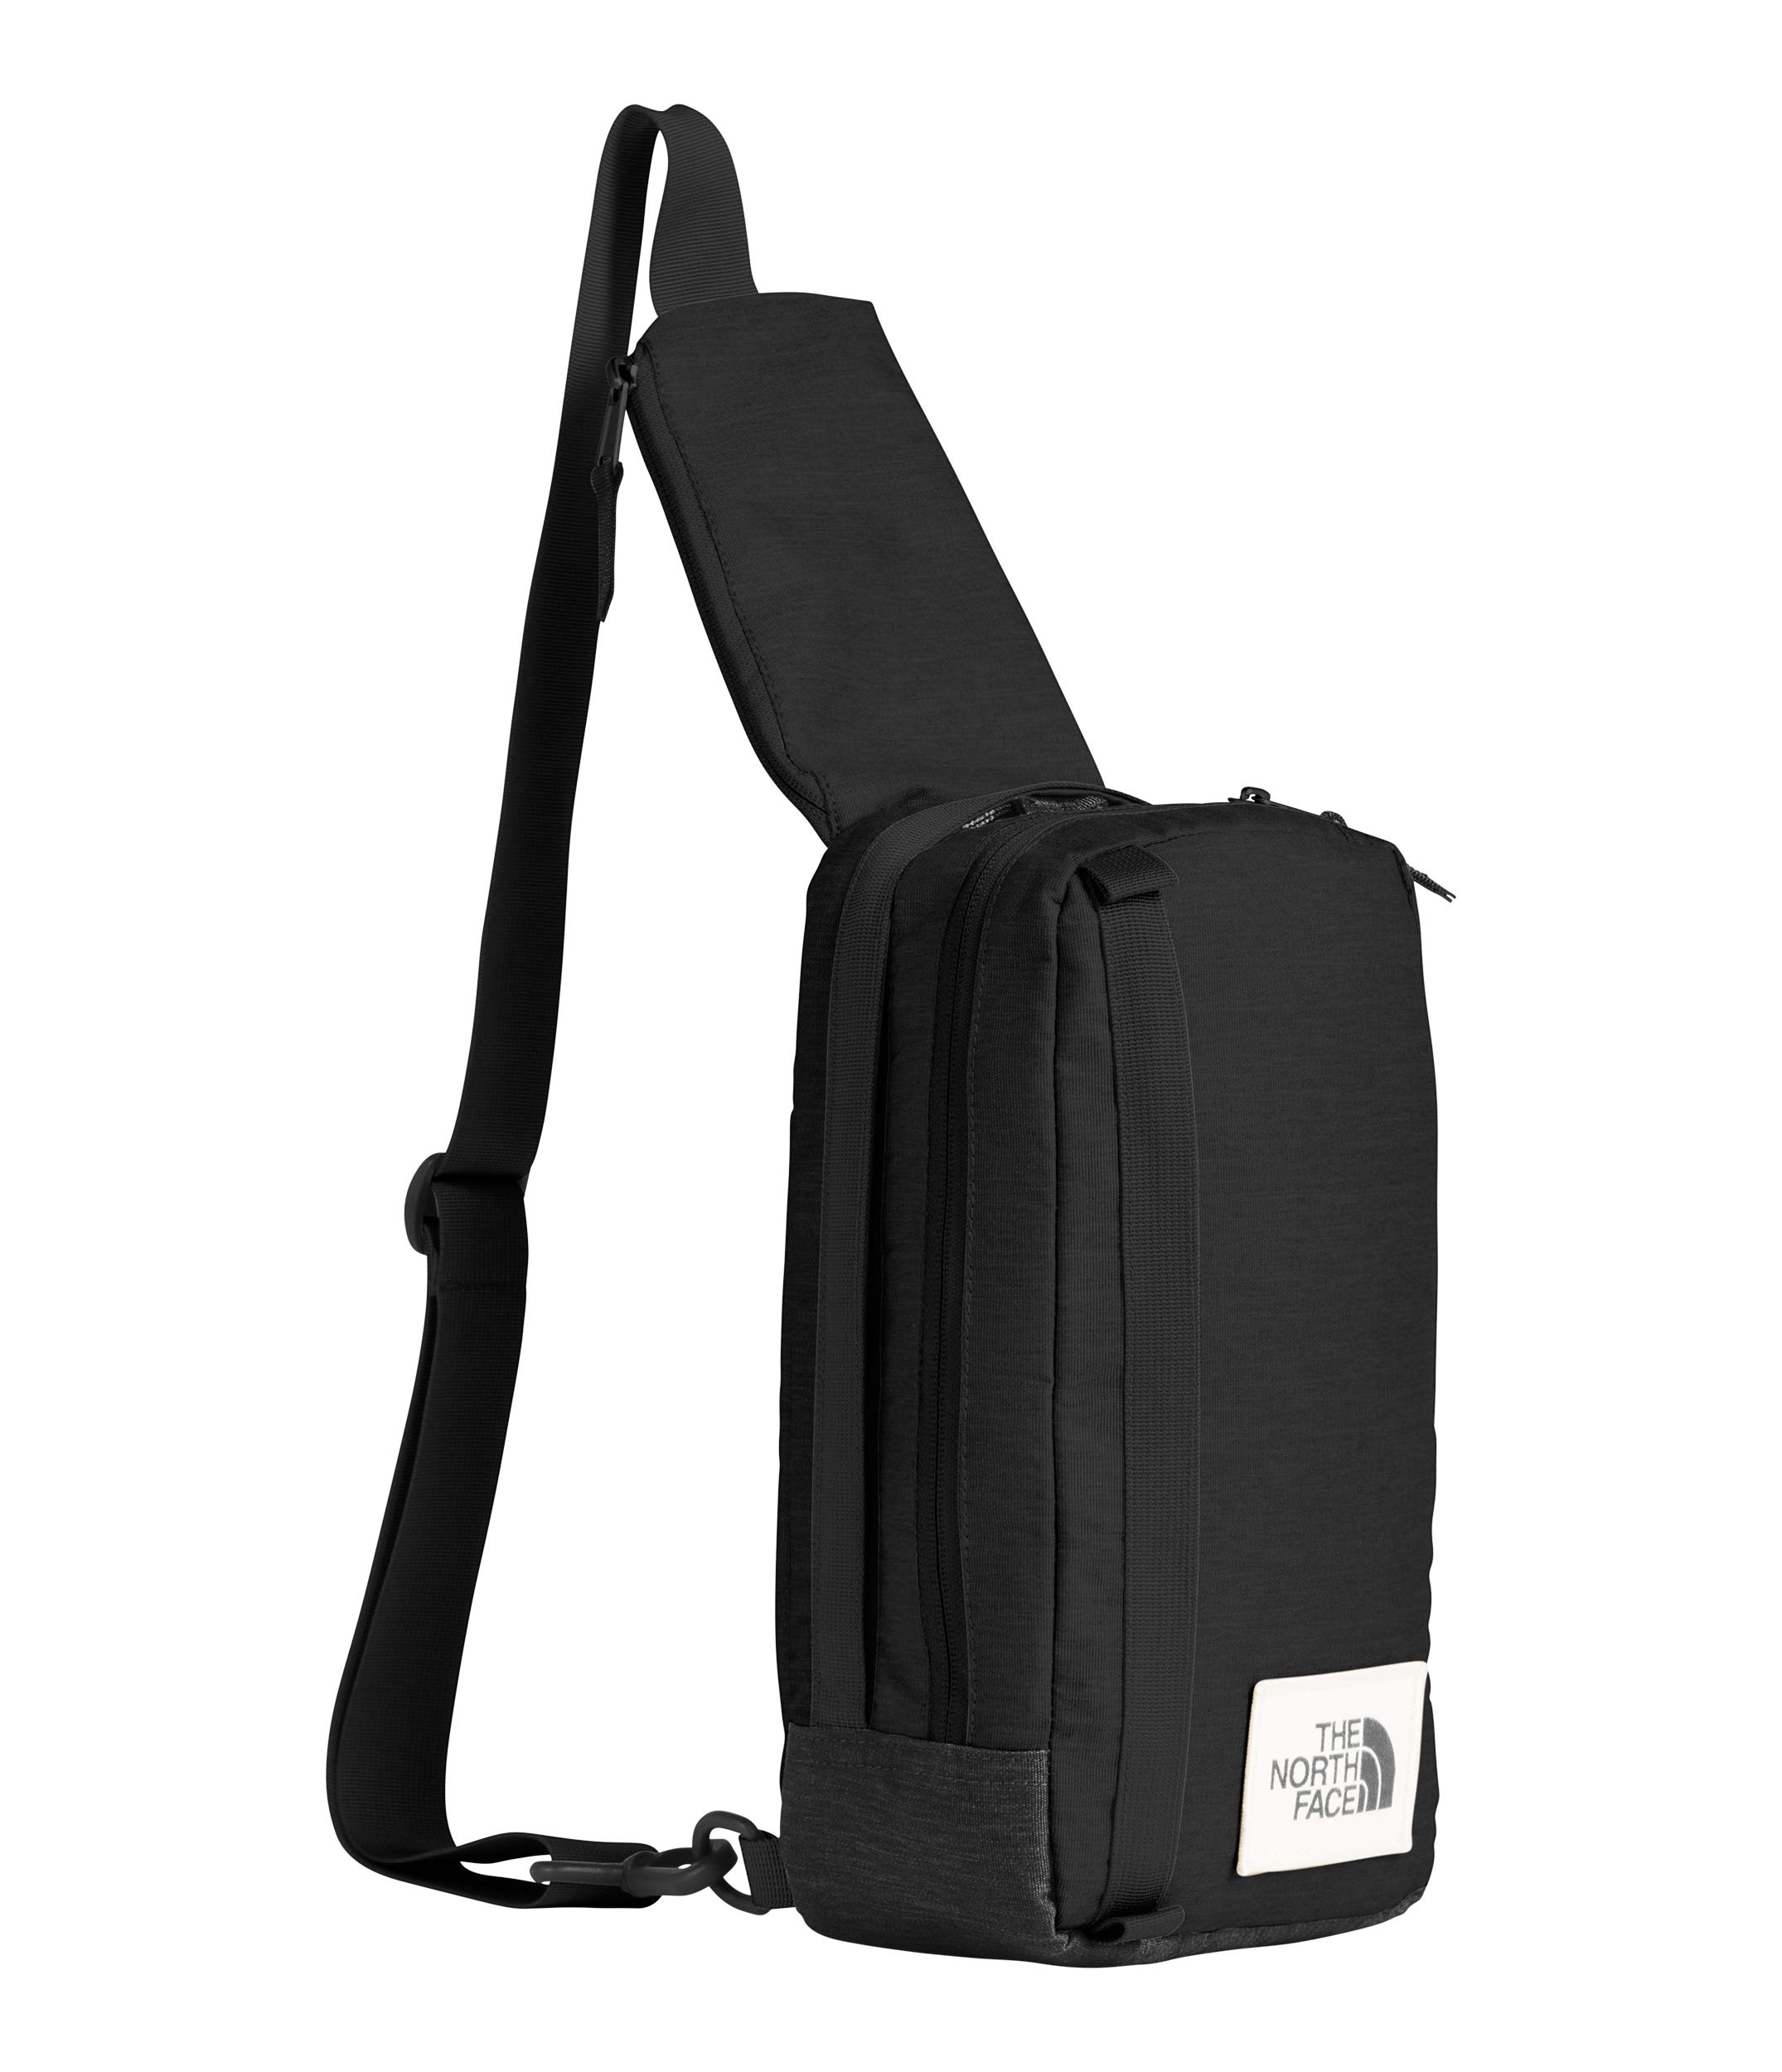 The North Face Field Bag, TNF Black Heather, OS by The North Face